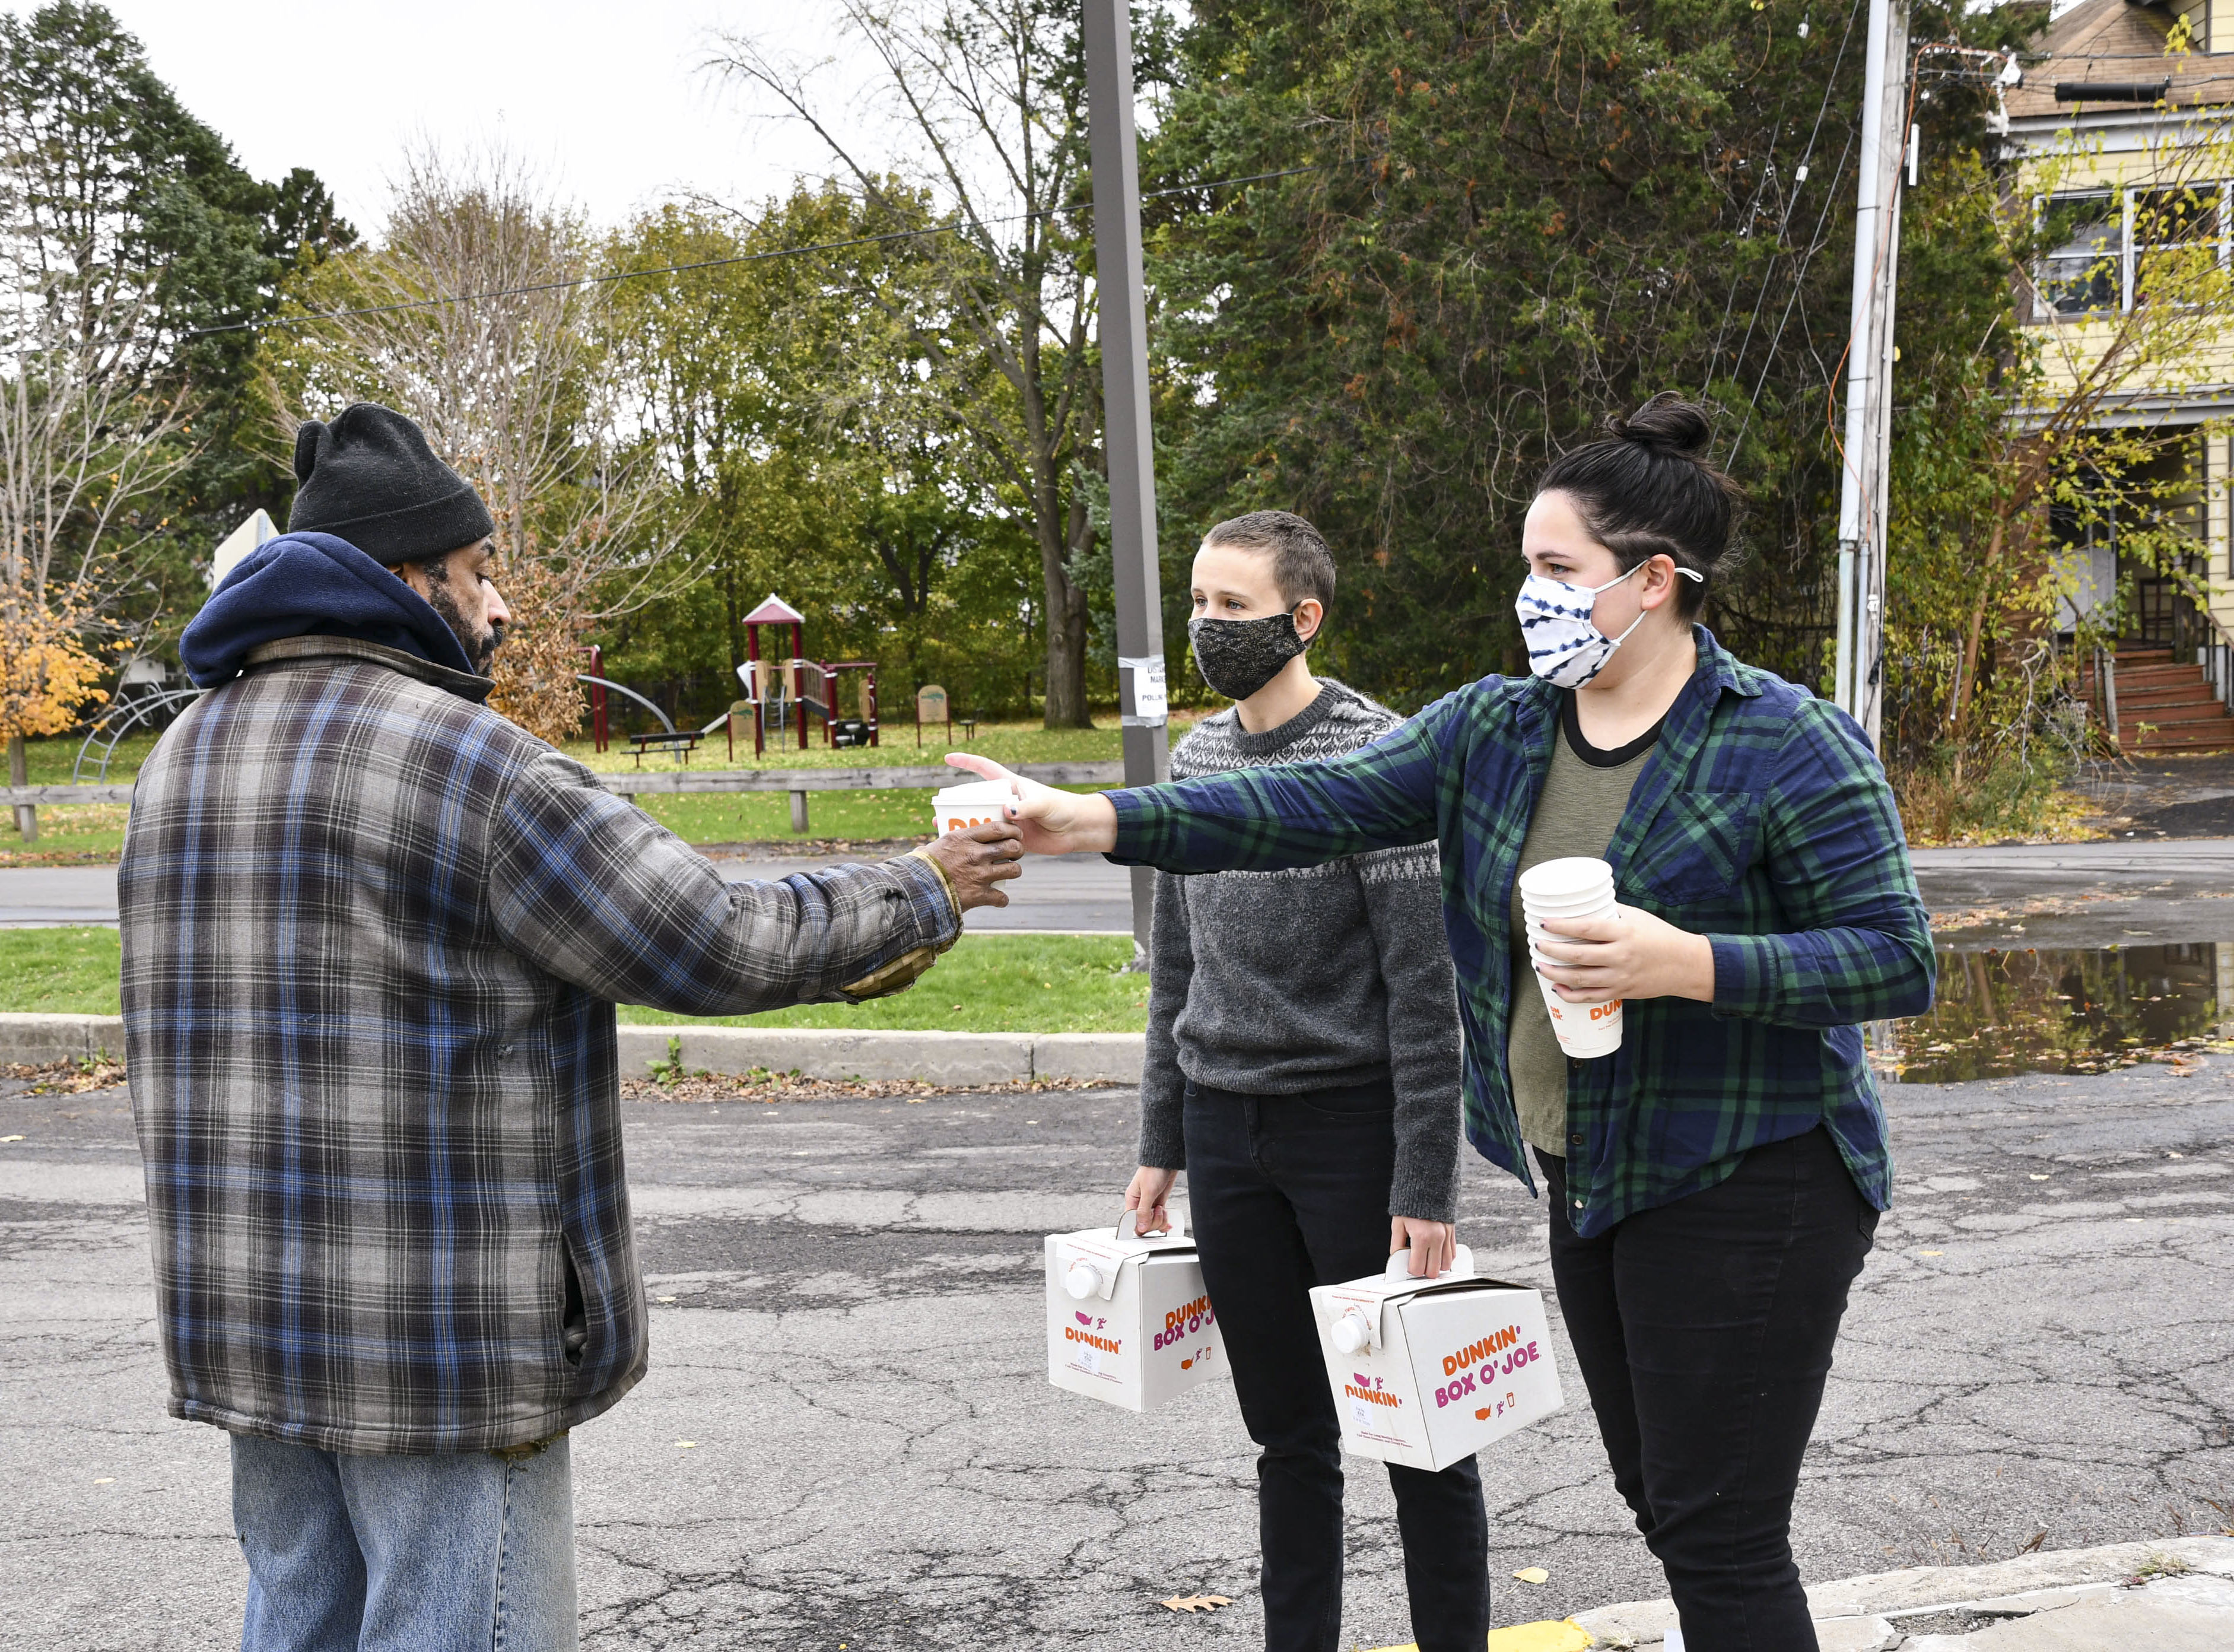 Lydia Dewing (right) and Luca Jurich (left) give a poll worker a cup of coffee on Election Day. According to Dewing, the two wanted to do something nice for voters and poll workers and plan to go to various polling places throughout Syracuse.